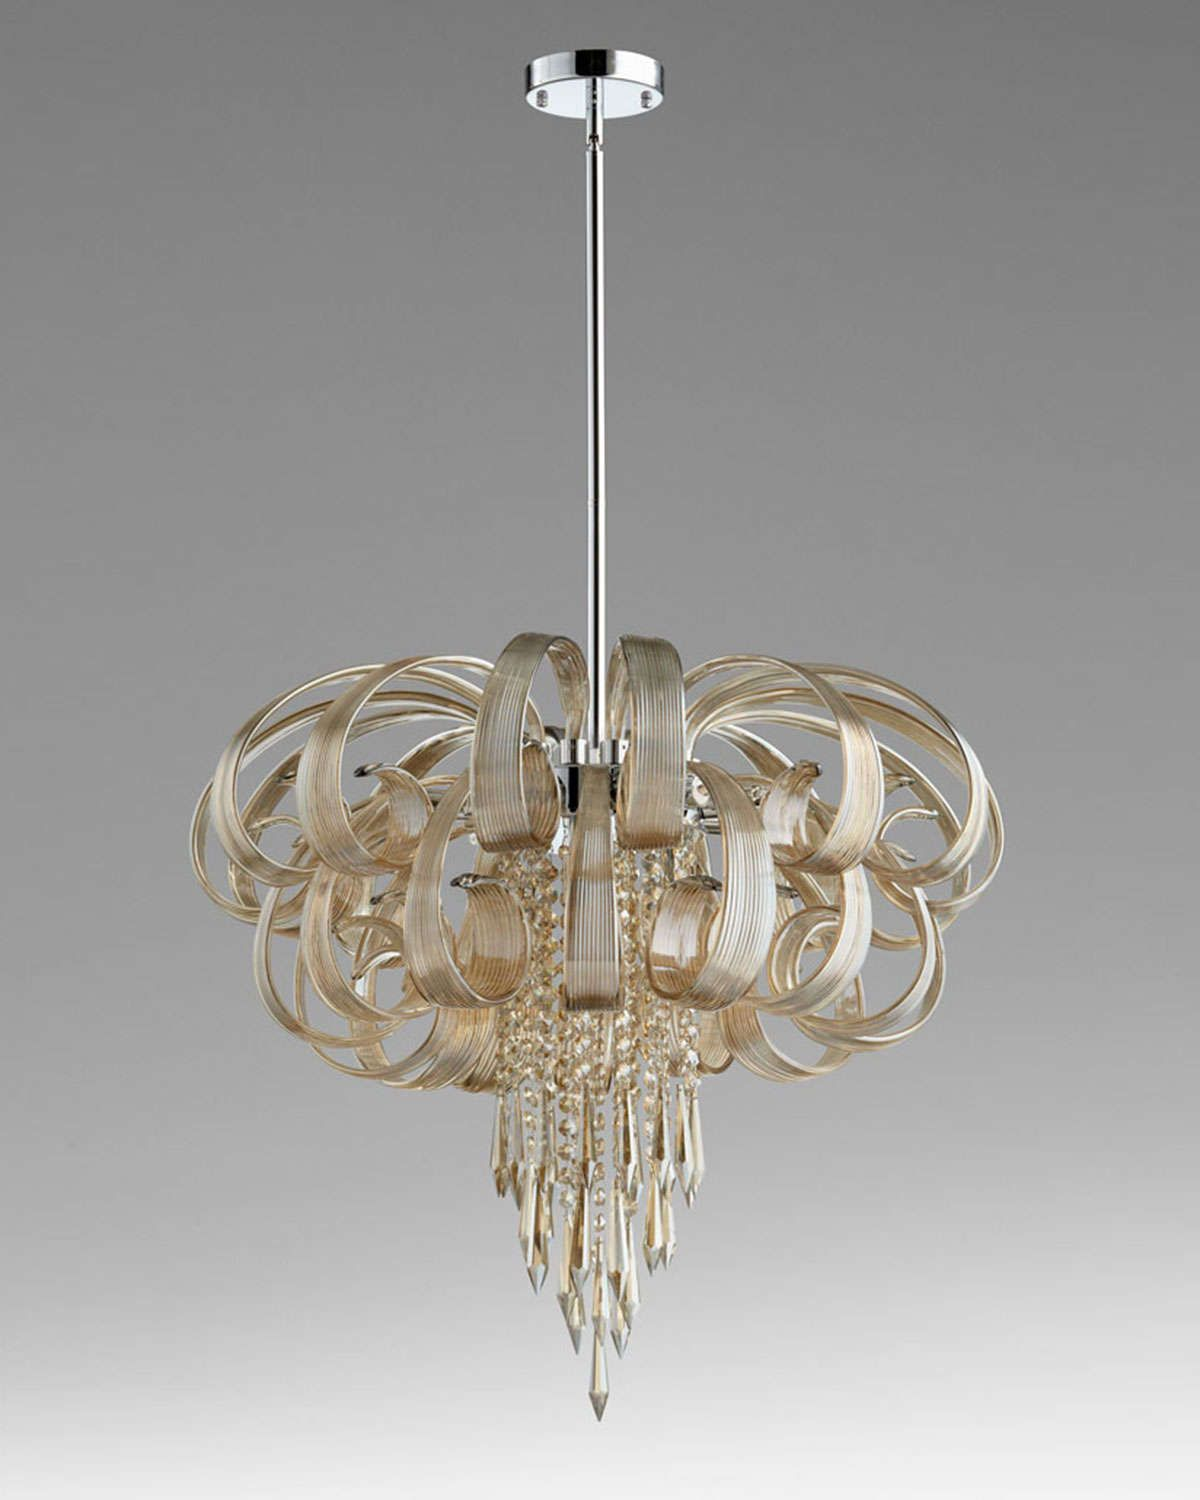 Neiman marcus lighting Chandelier Lighting Astor 10light Chandelier Silver Neiman Marcus Pinterest Astor 10light Chandelier Silver Neiman Marcus 灯具 Pinterest